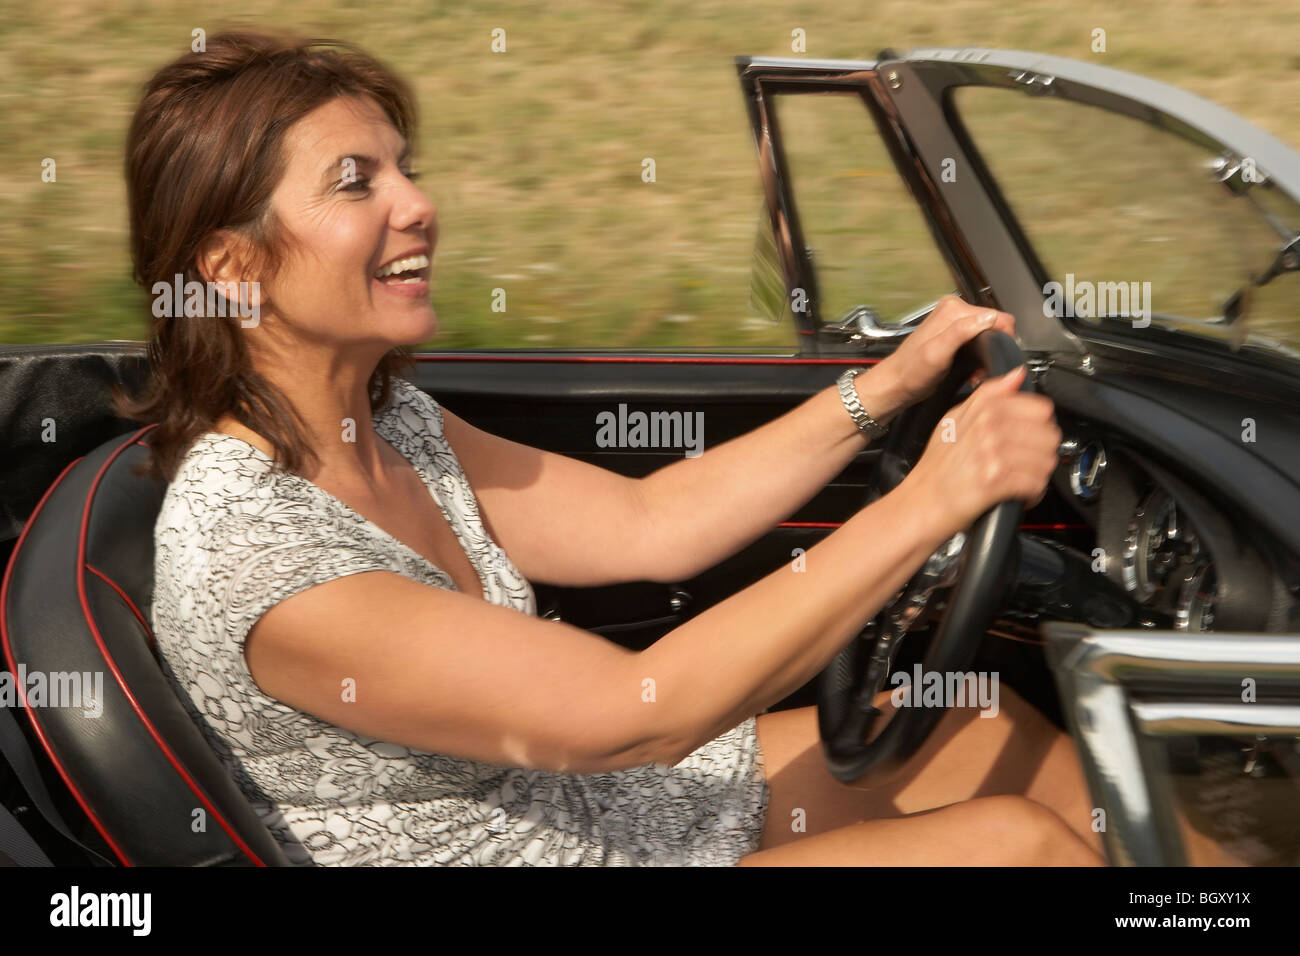 Mid aged woman in sports car - Stock Image